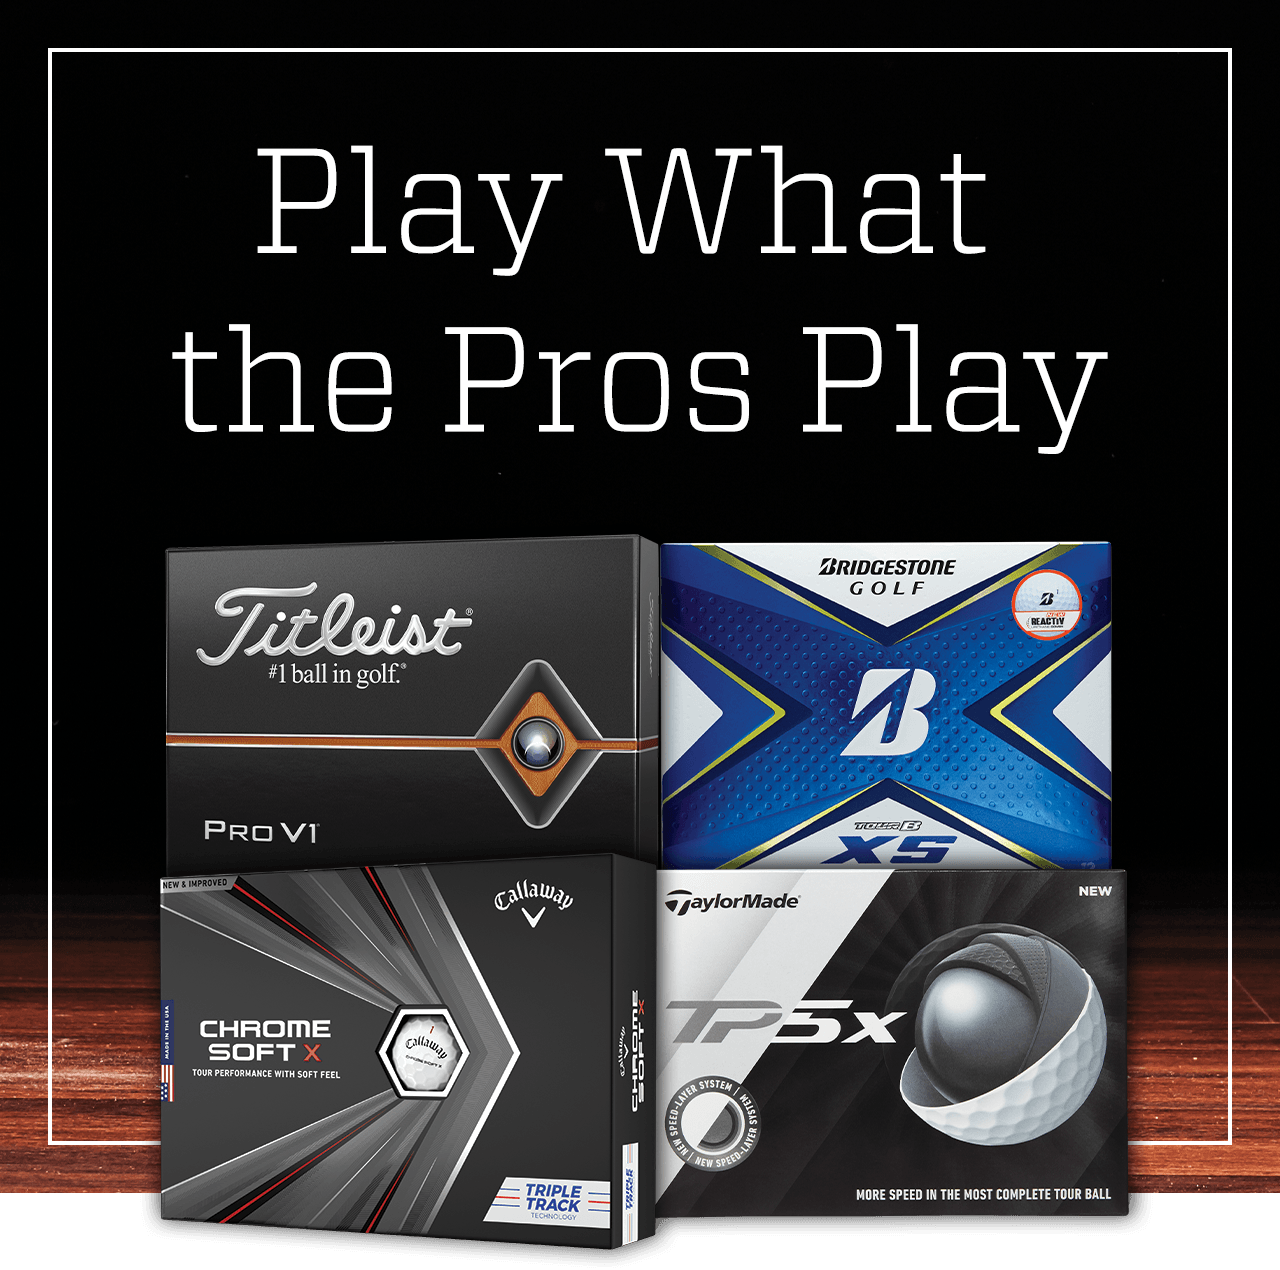 Play what the pros play.